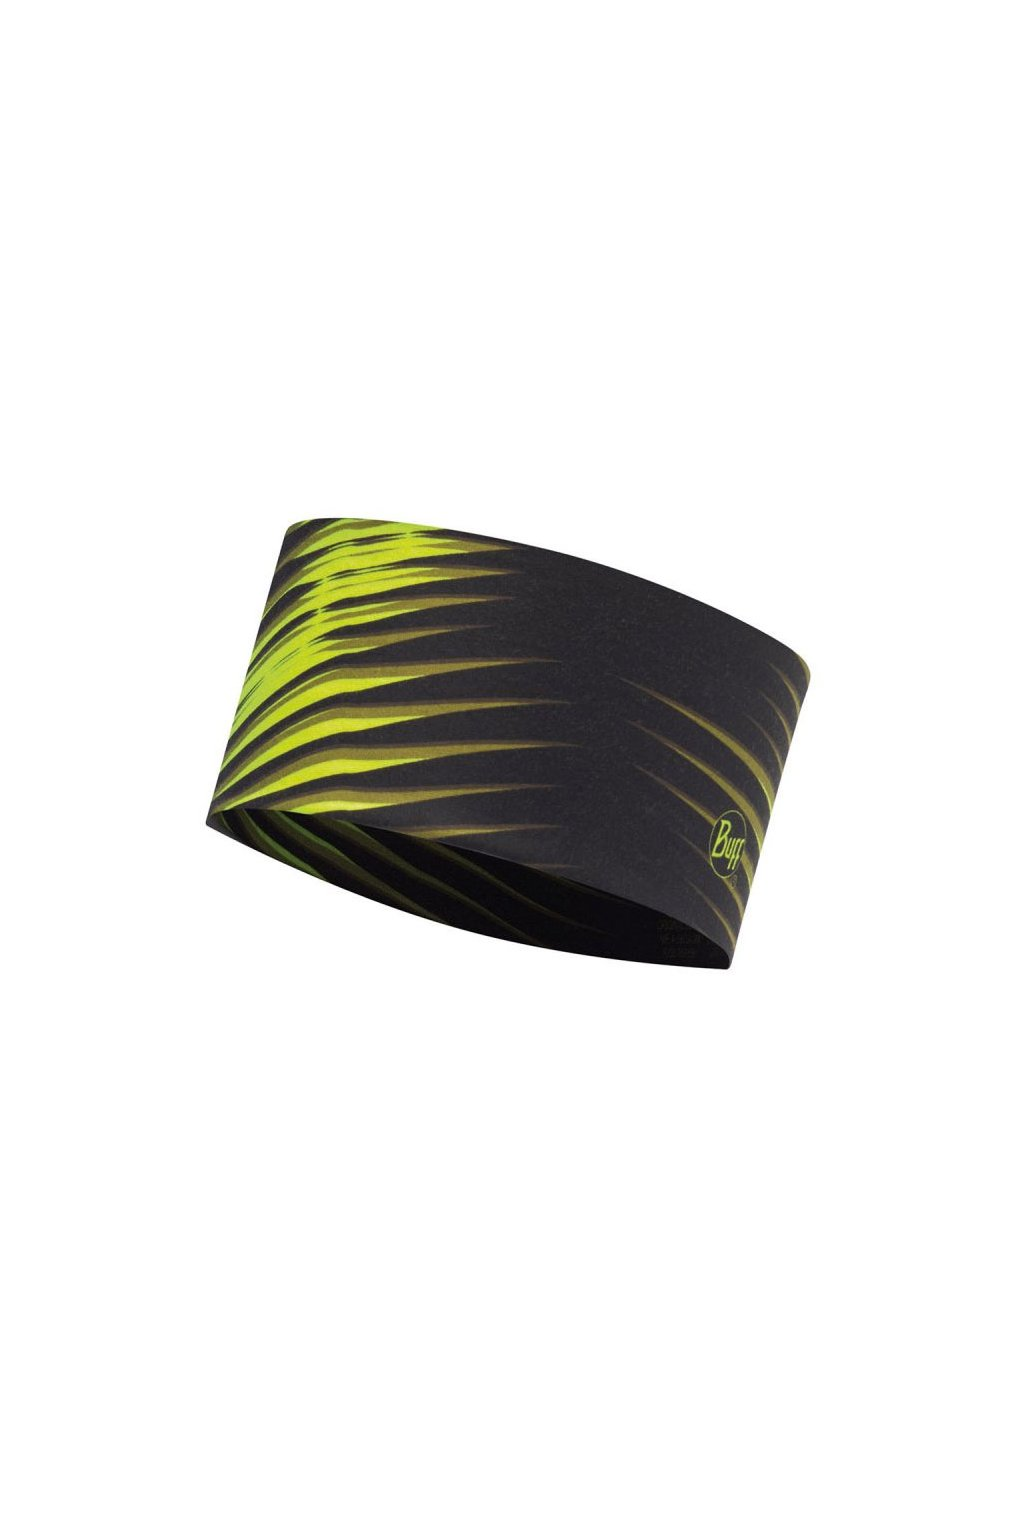 buff headband optical yellow fluor